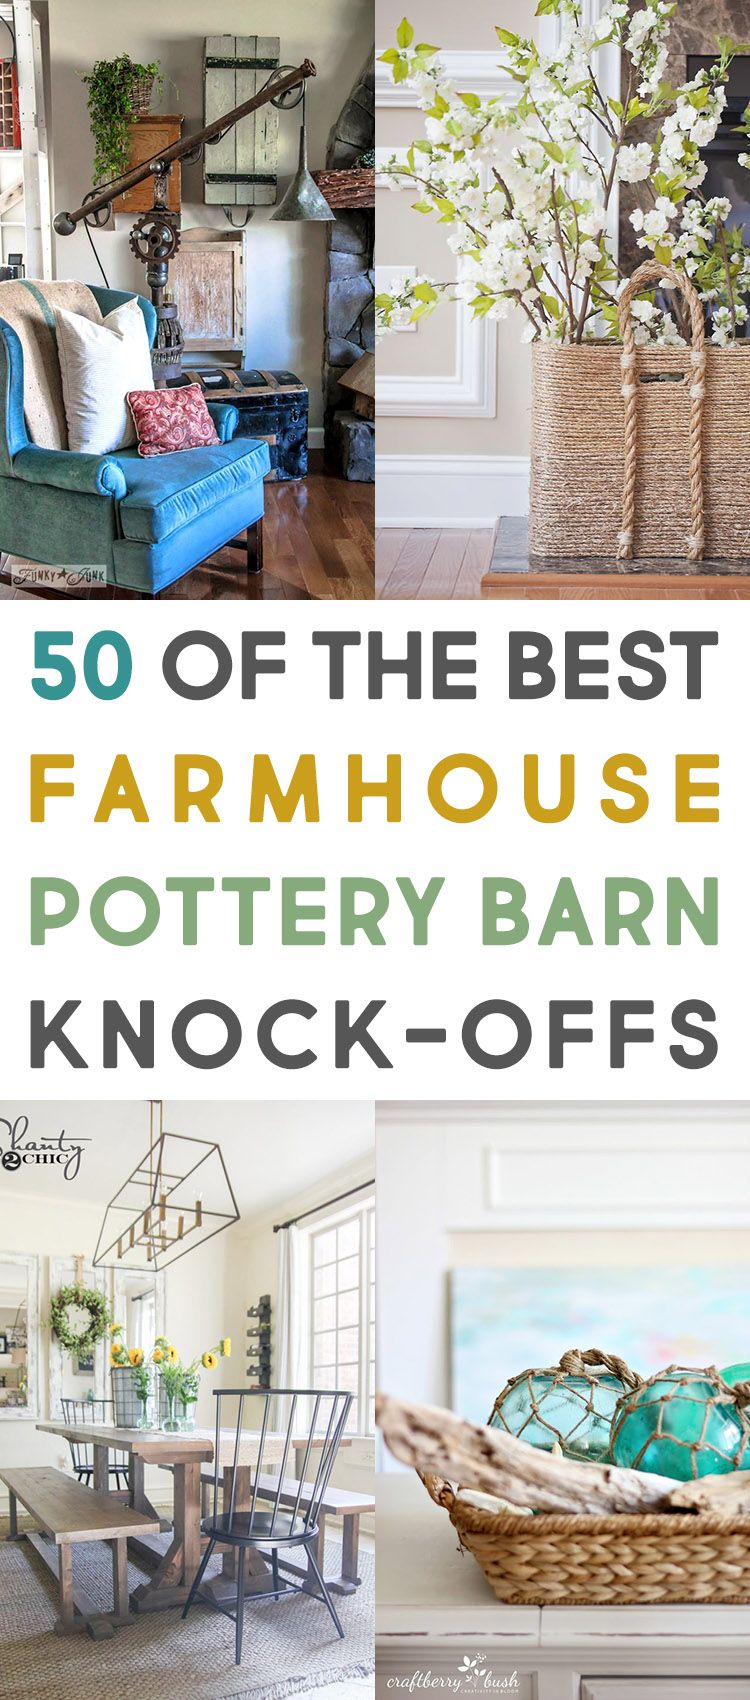 50 of The Best Farmhouse Pottery Barn Knock-Offs | Pottery, Barn and ...